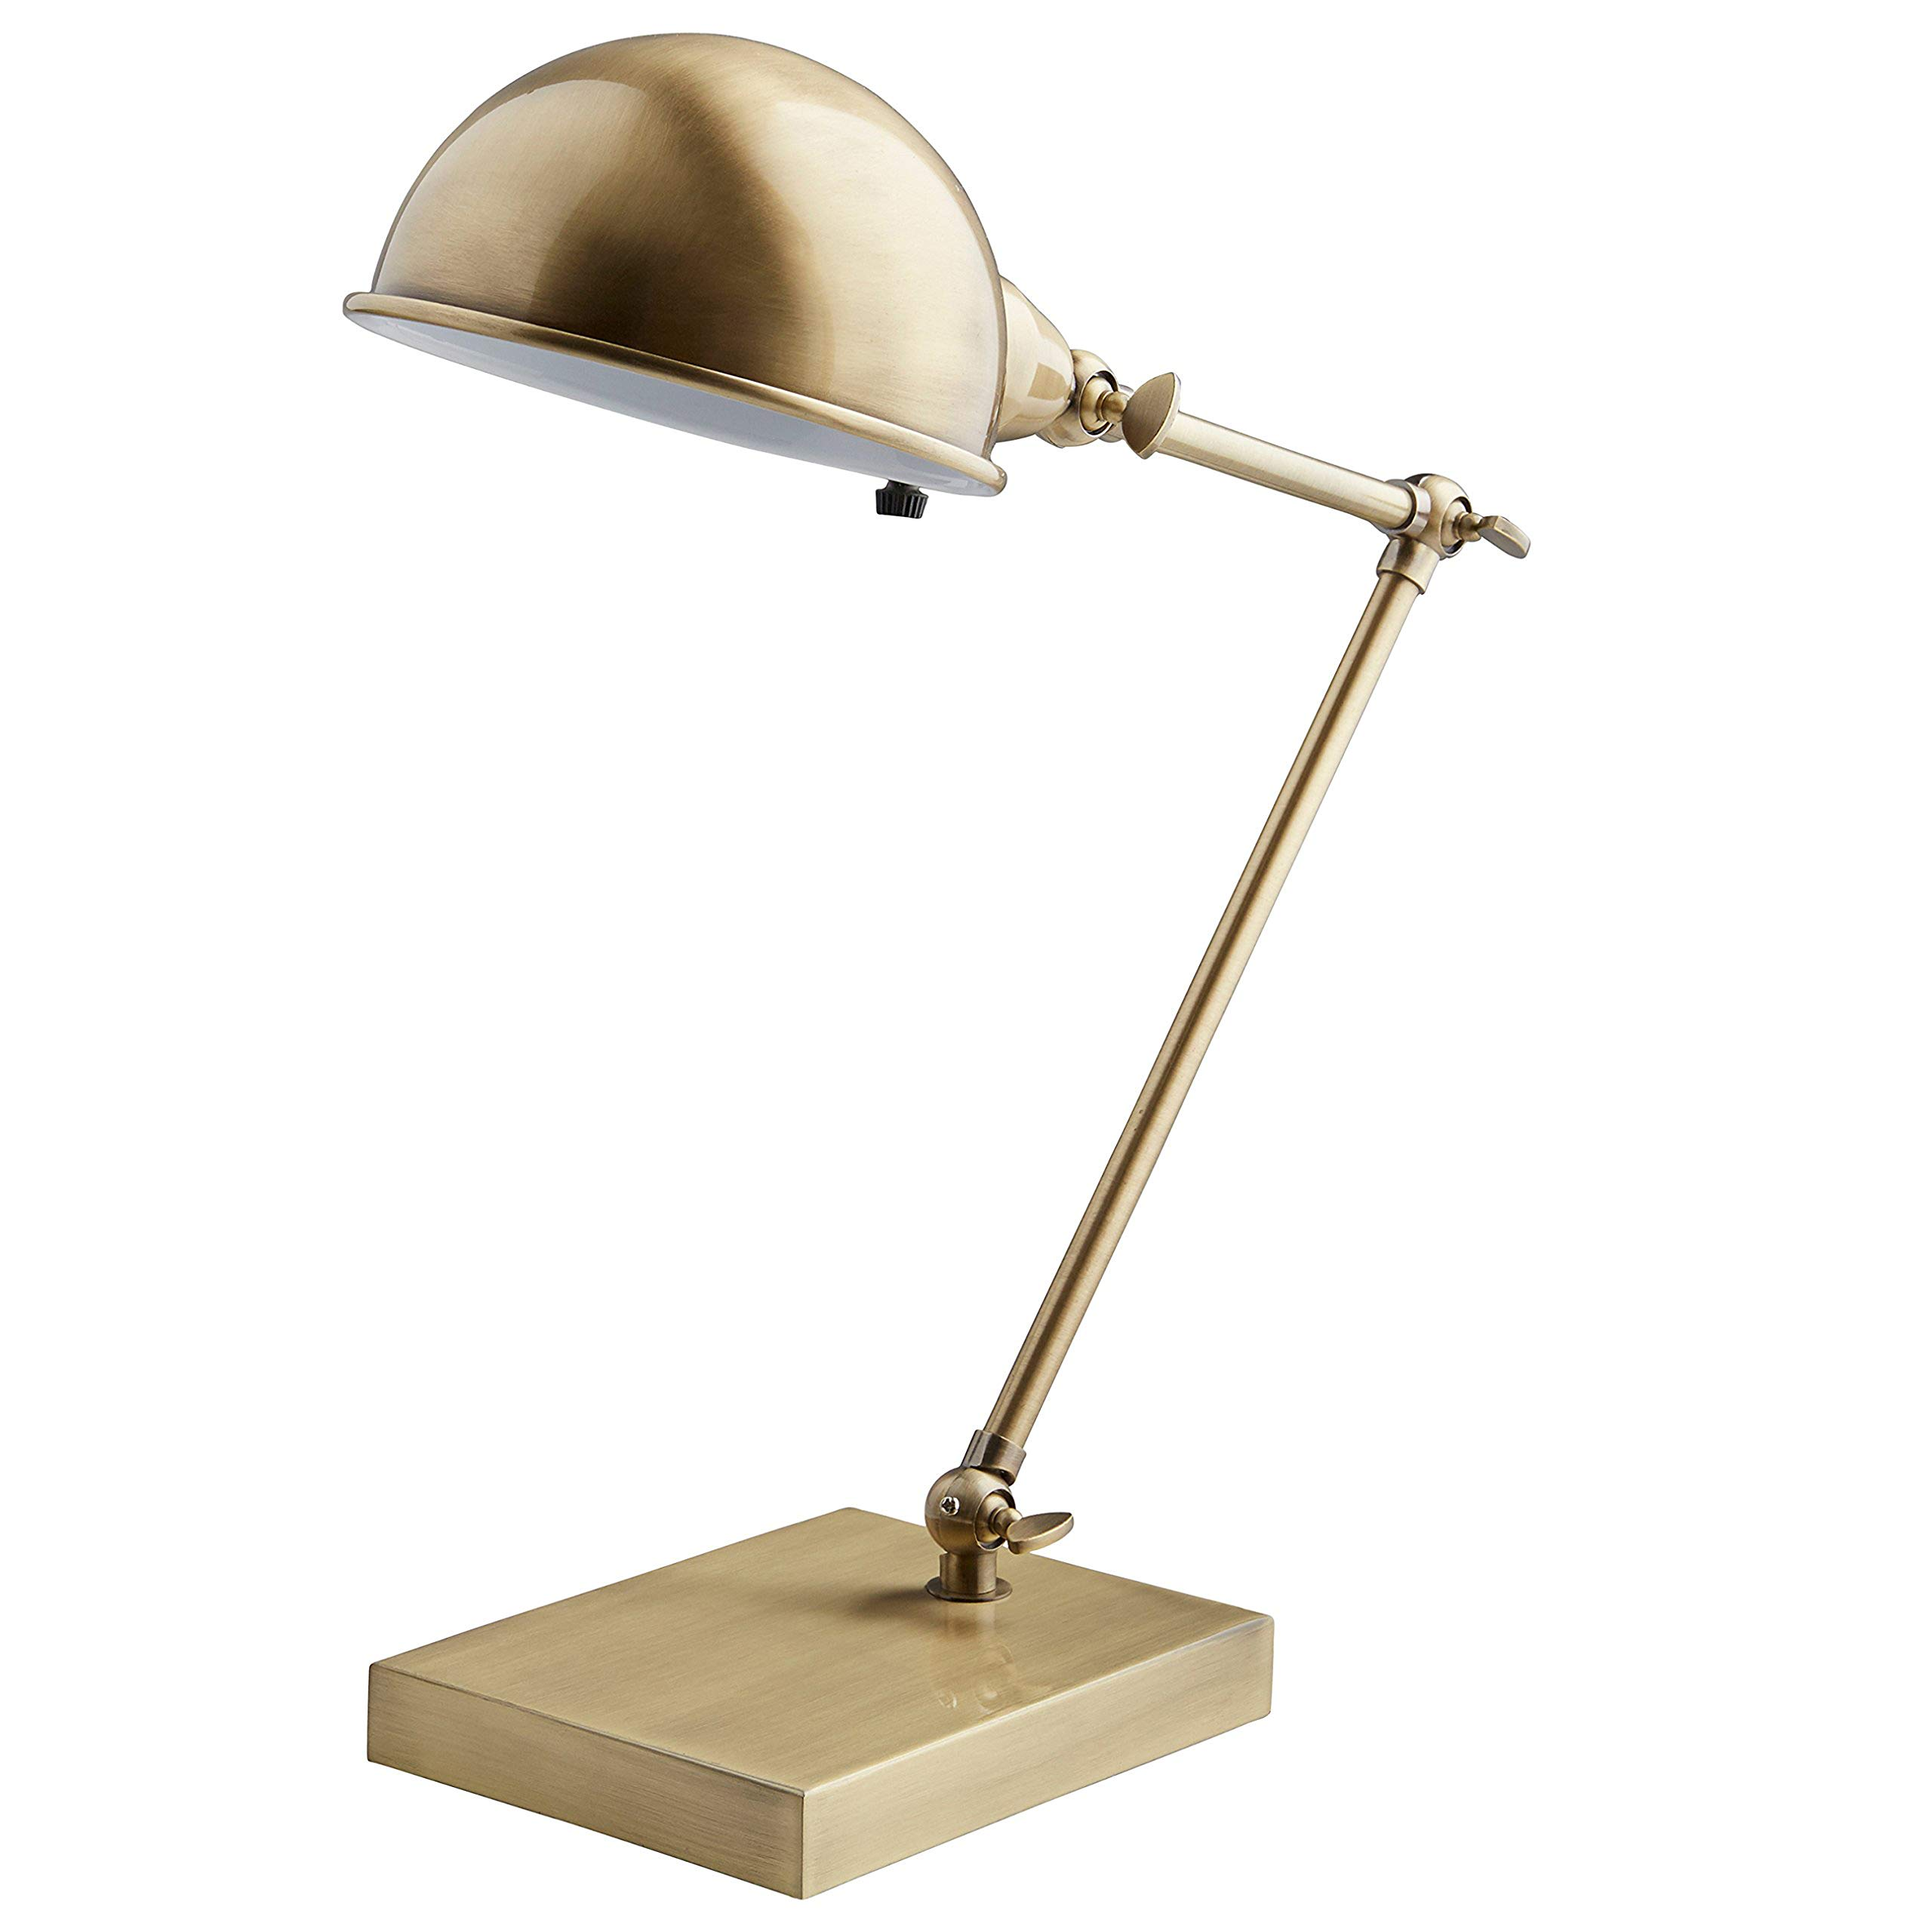 Stone & Beam Vintage Task Lamp With Bulb, 14''H, Antique Brass